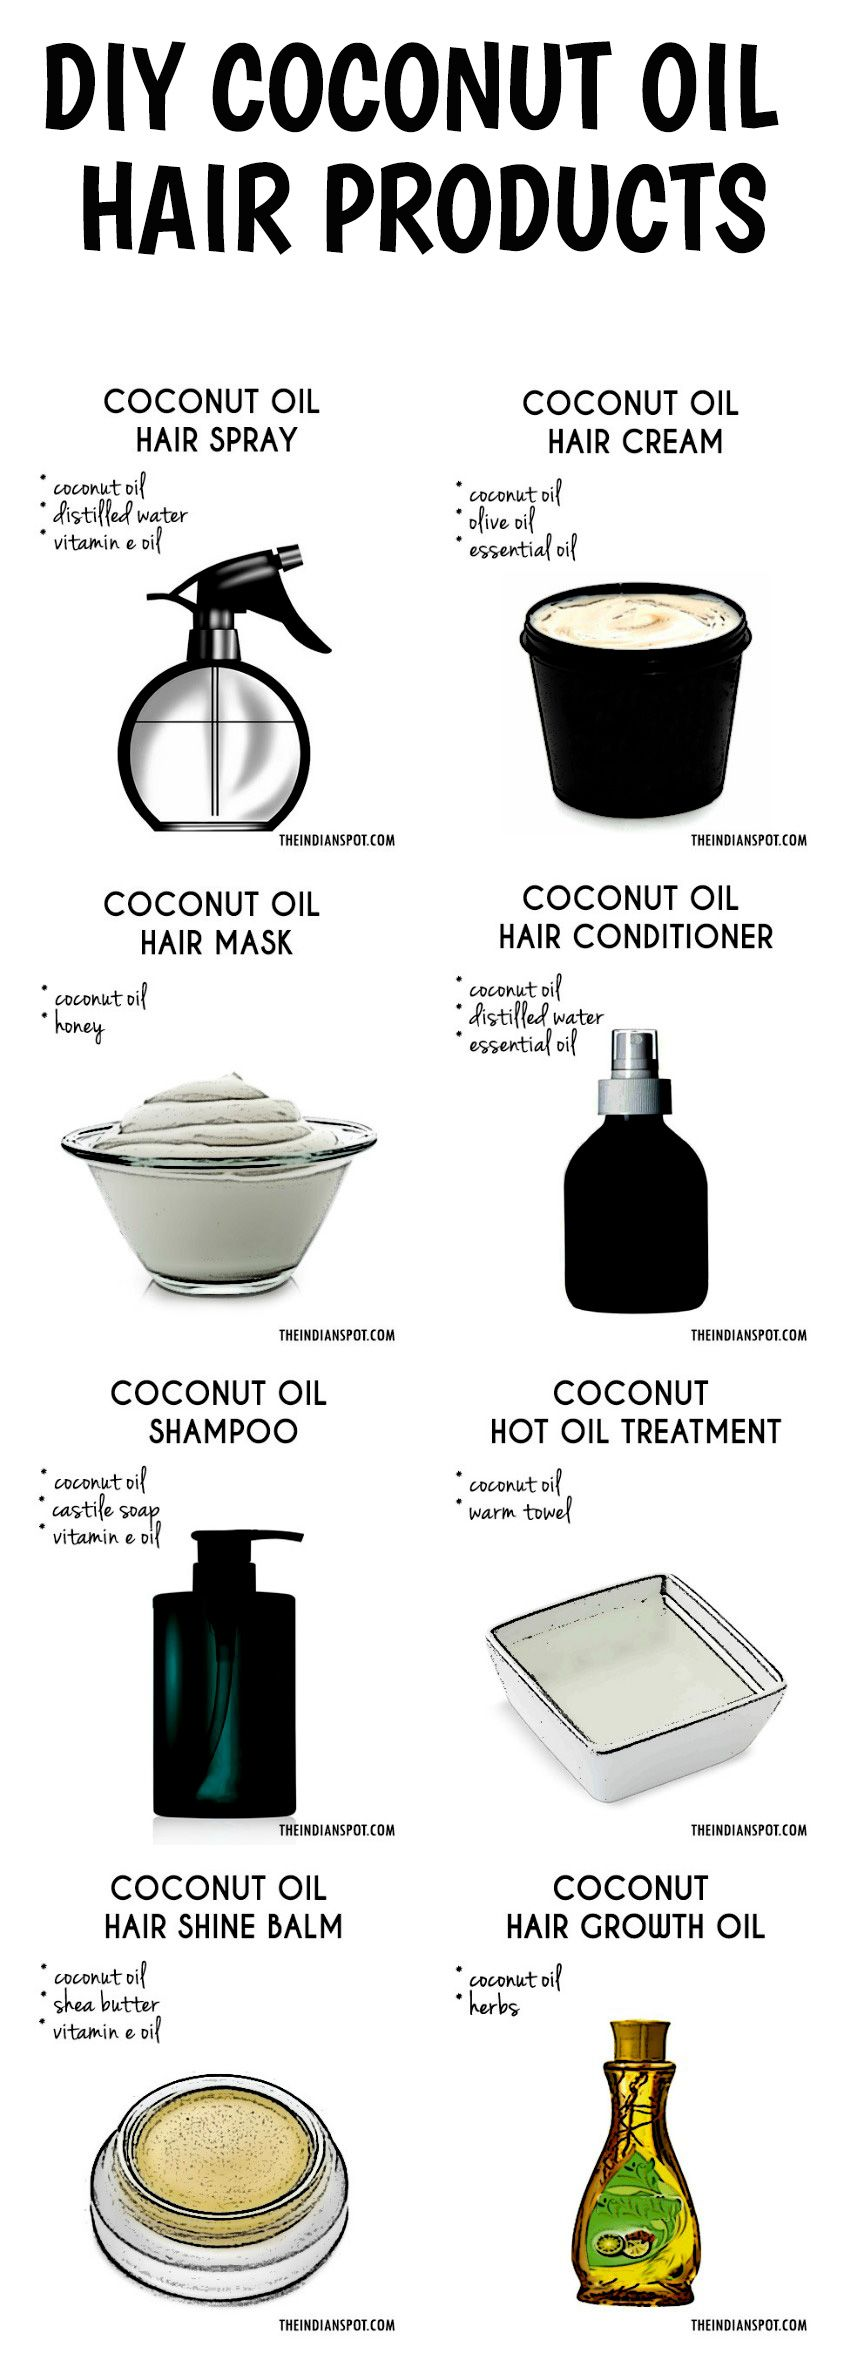 Want To Care For Your Brittle Hair, Try These Tips ** Click image for more details. Diy Coconut Oil Hair Mask, Diy Hair Oil, Coconut Oil Curly Hair, Coconut Oil Uses For Skin, Dry Coconut, Coconut Oil Hair Overnight, Coconut Oil Hair Growth, Cut Hair Diy, Diy Hair Mask For Dry Hair